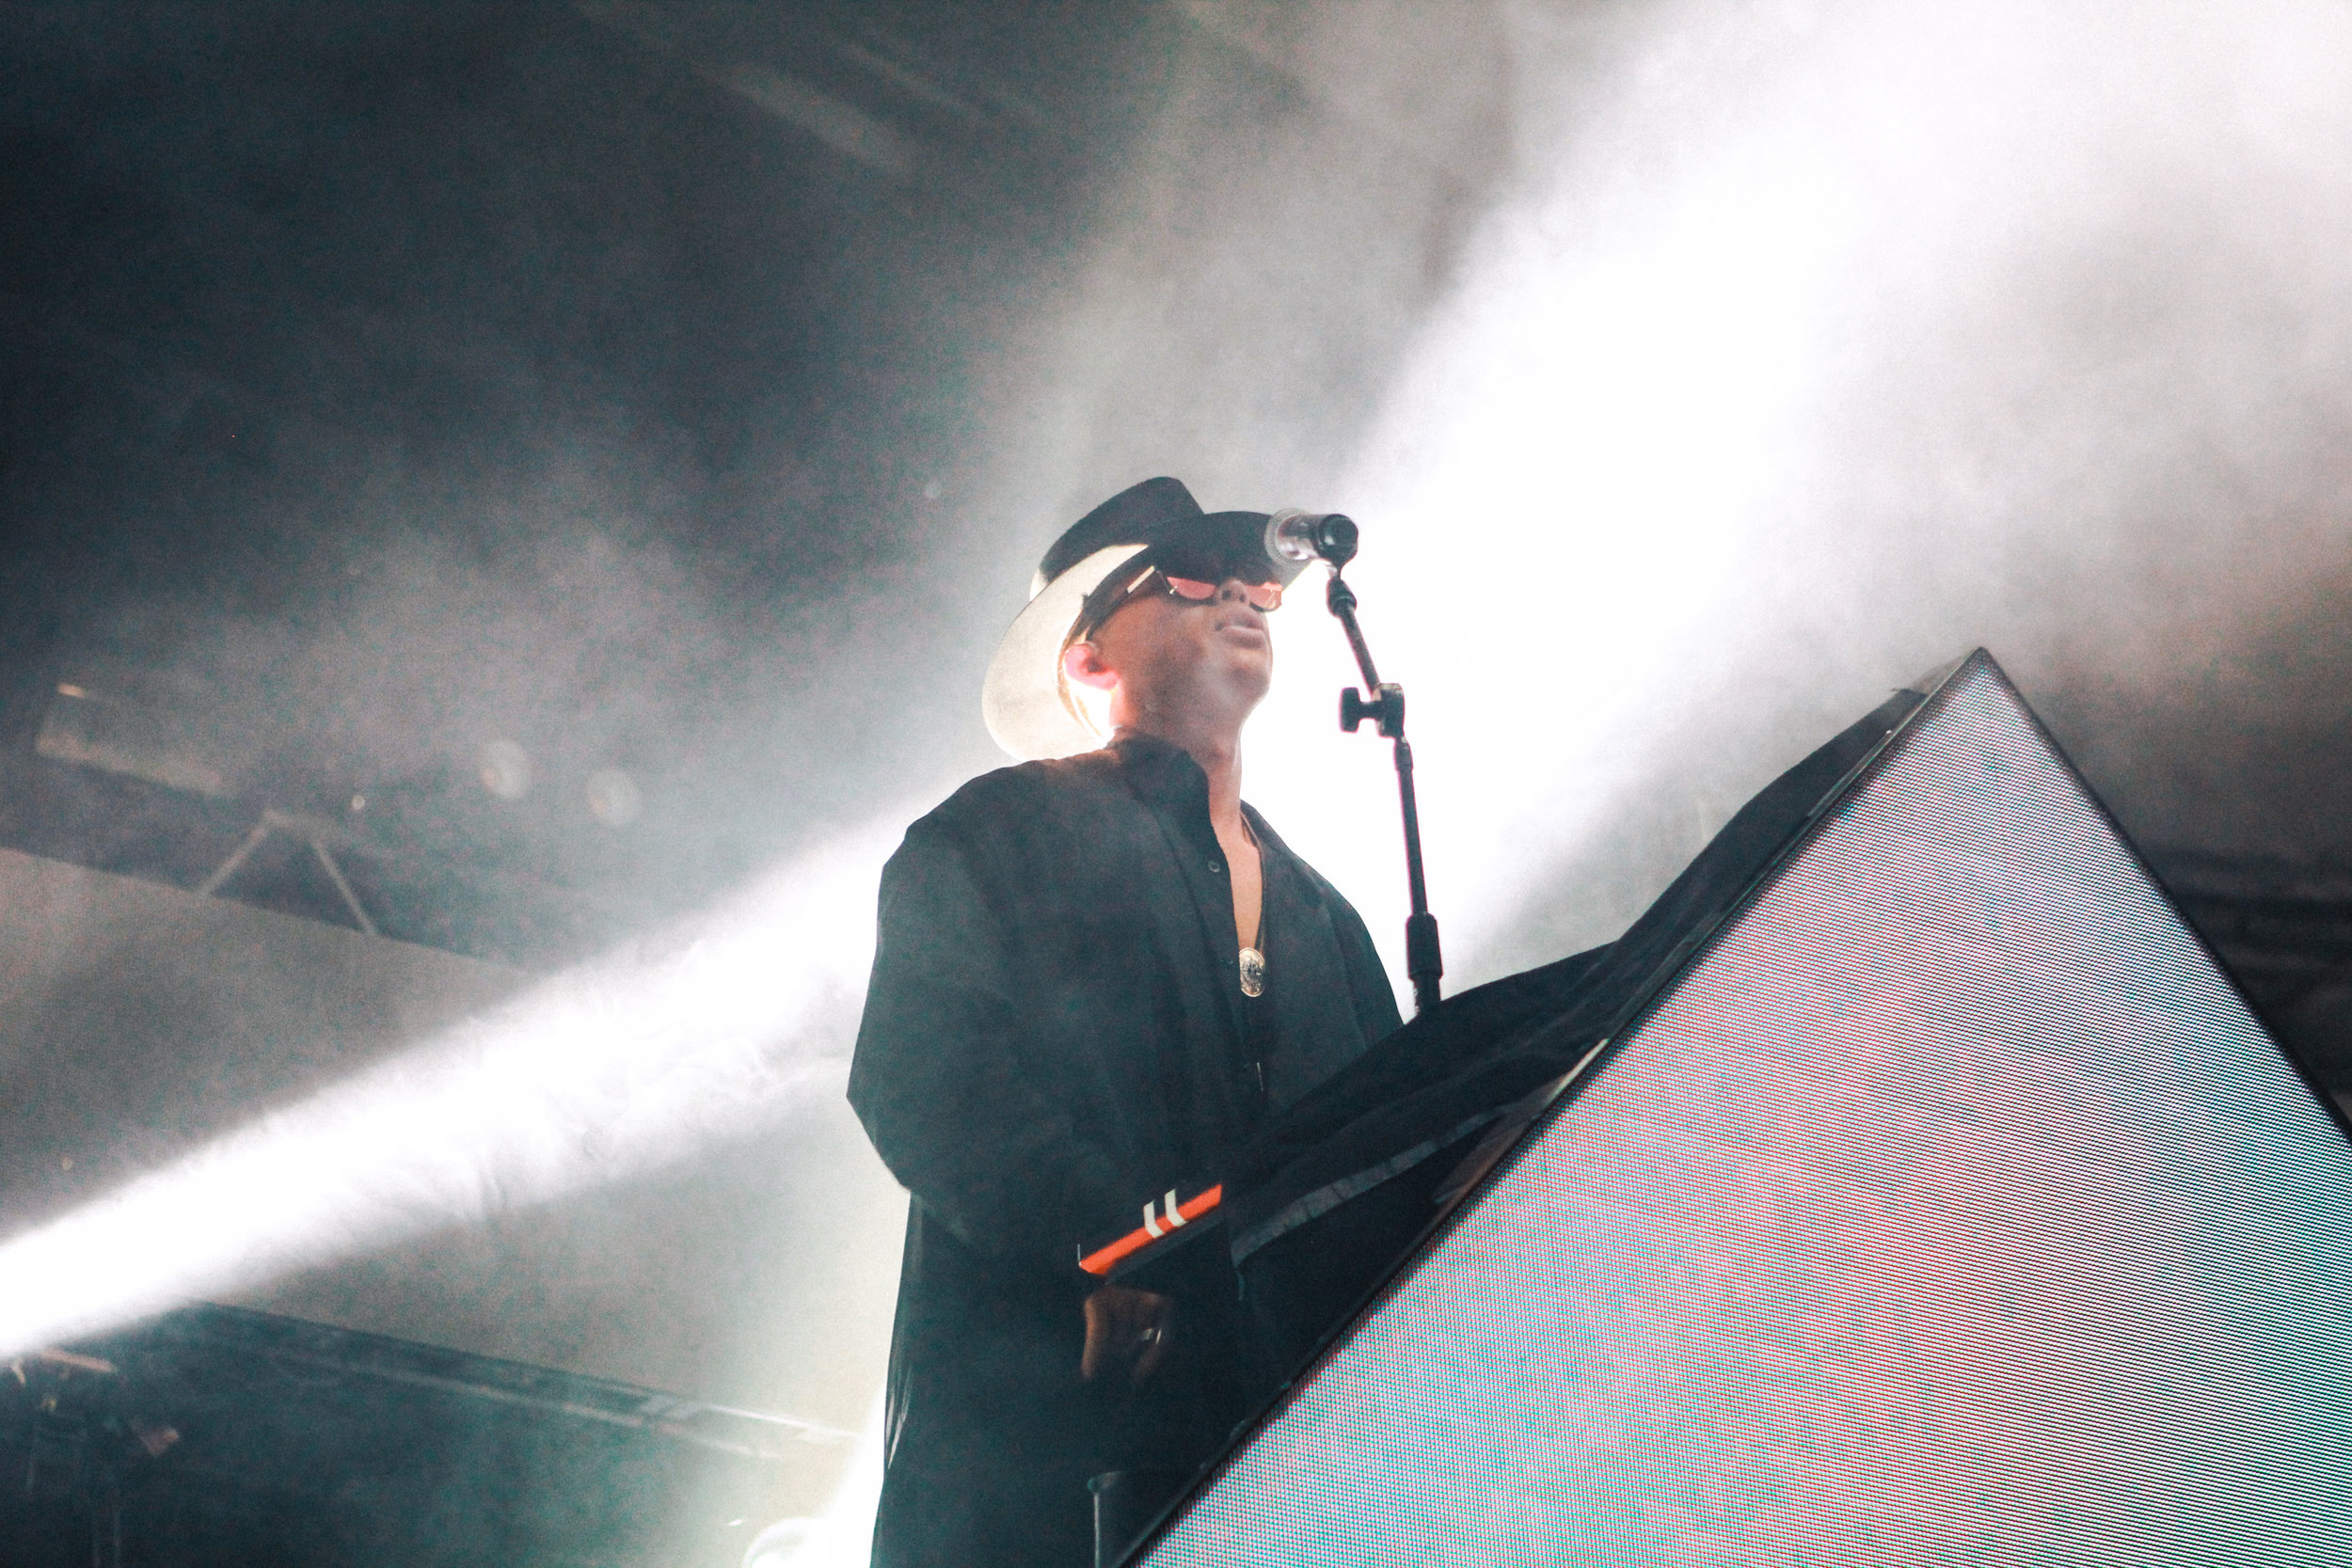 Zhu plays to a sold out crowd at Stubbs.